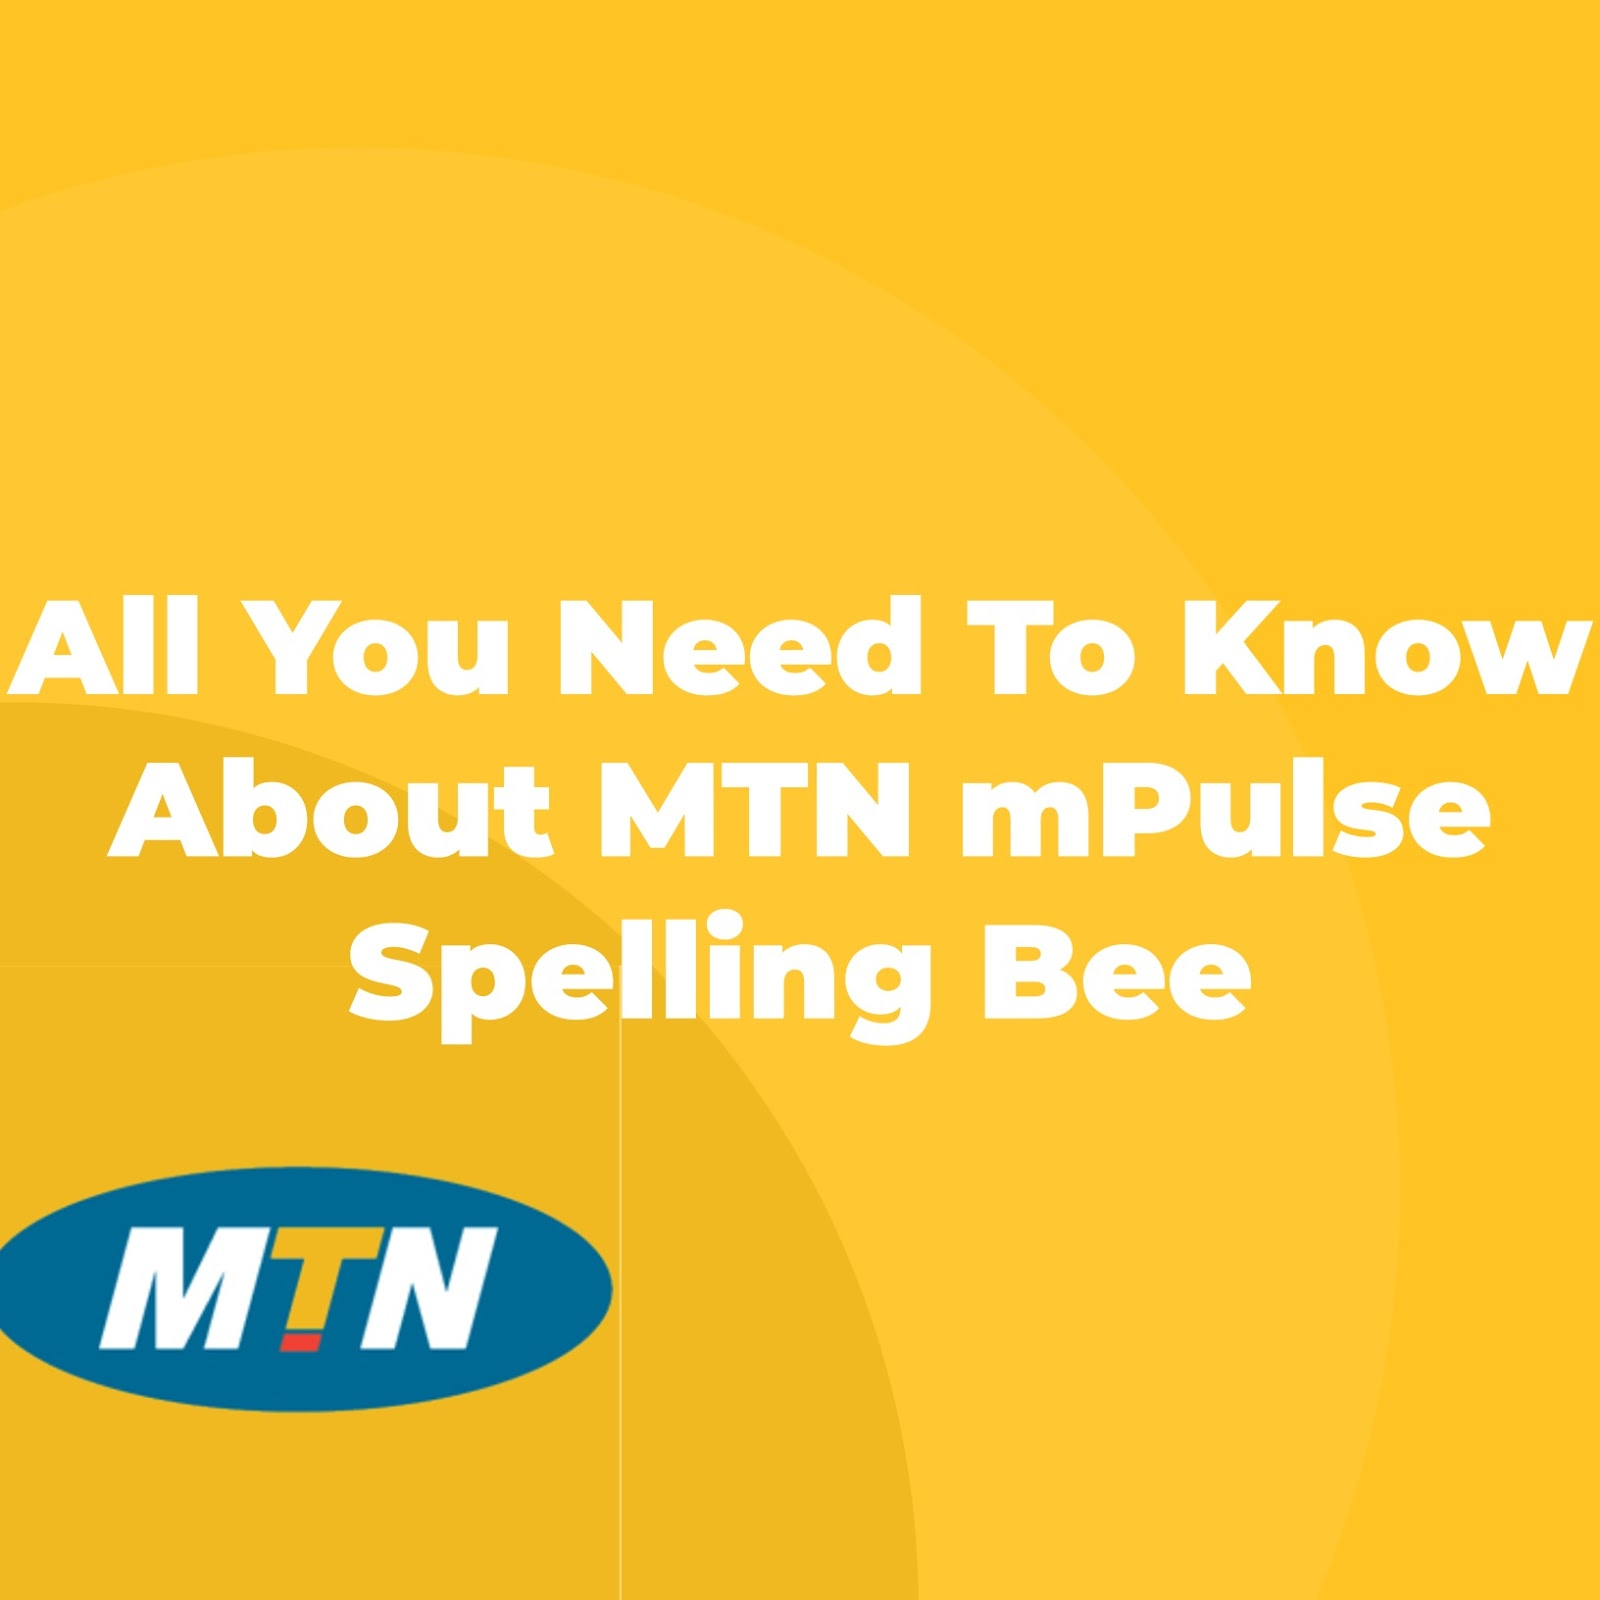 All You Need To Know About MTN mPulse Spelling Bee